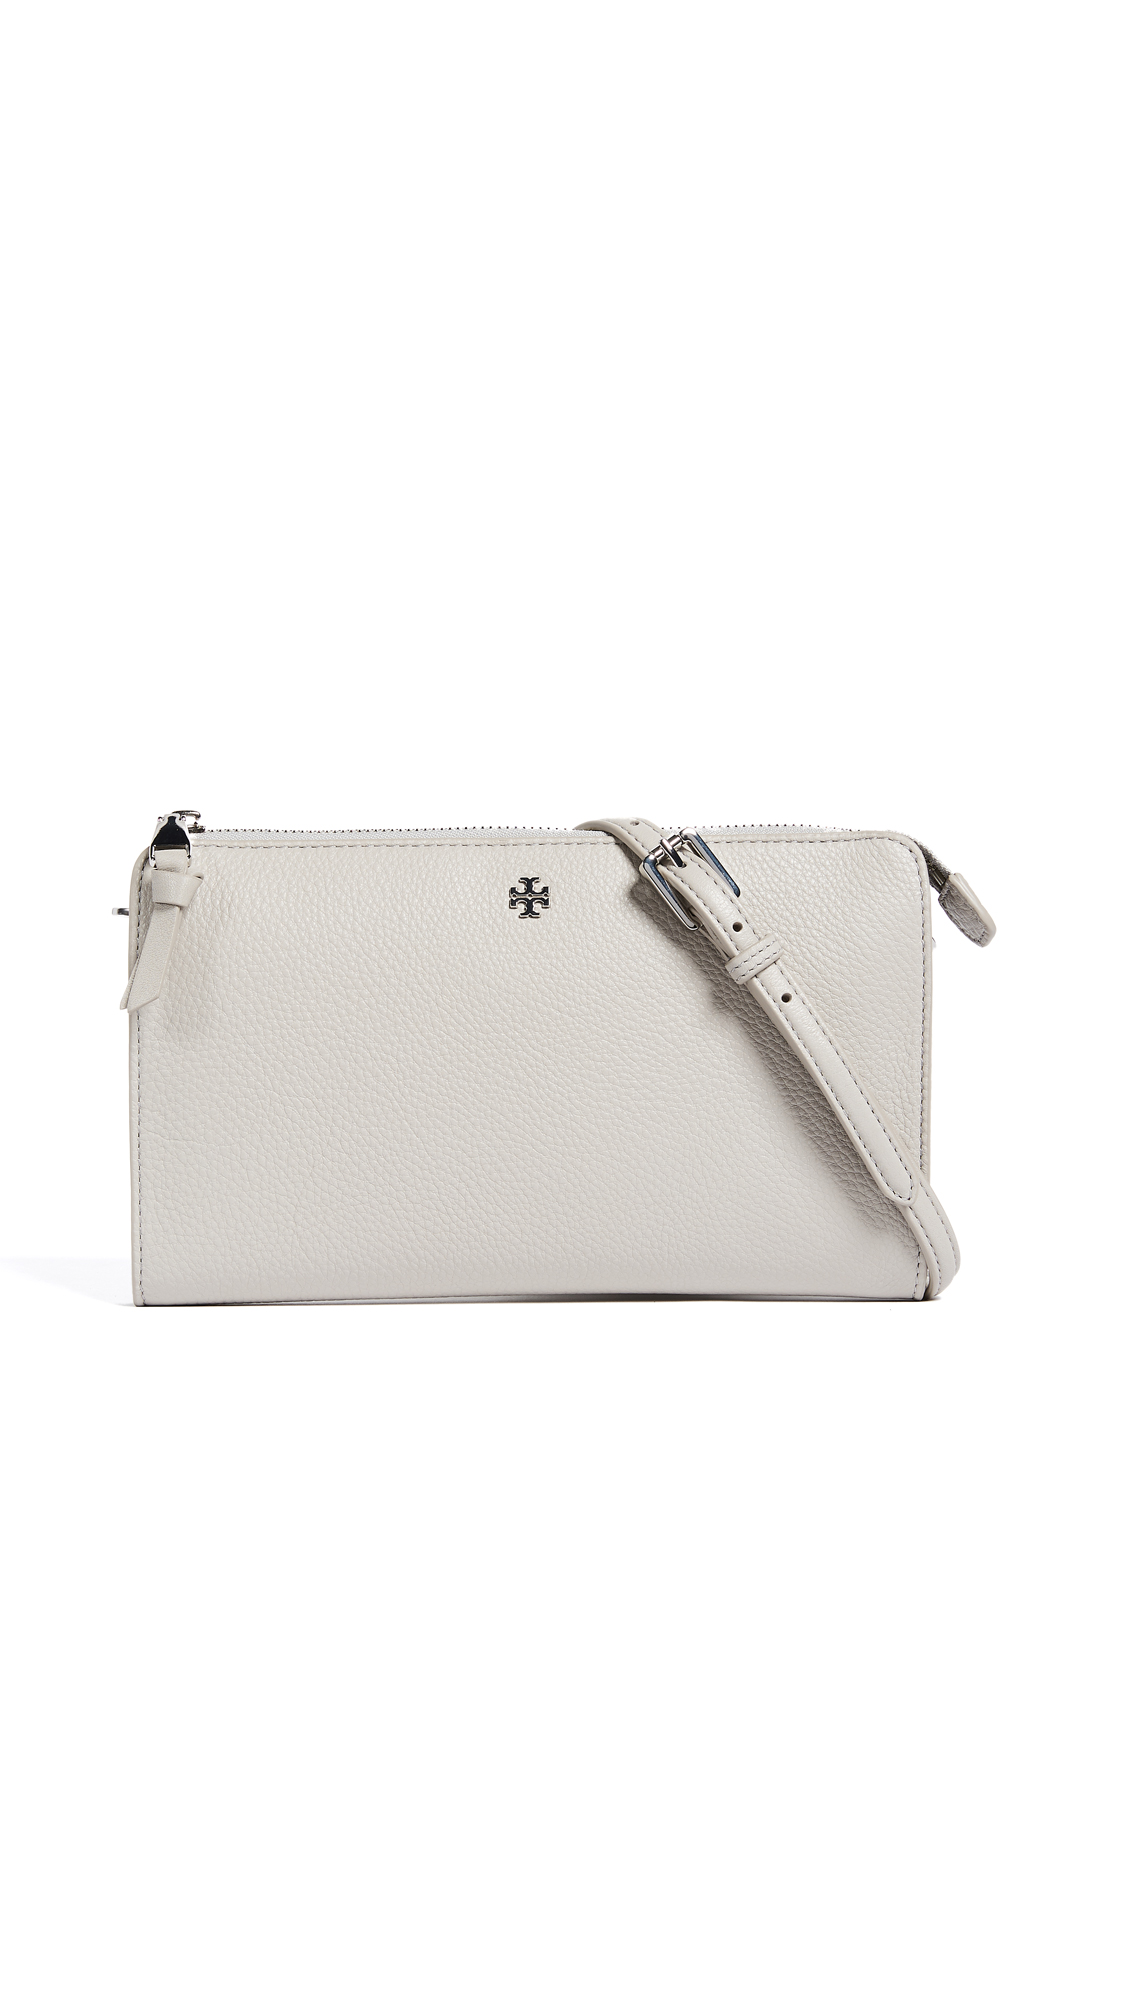 Tory Burch Robinson Pebbled Cross Body Wallet - Concrete